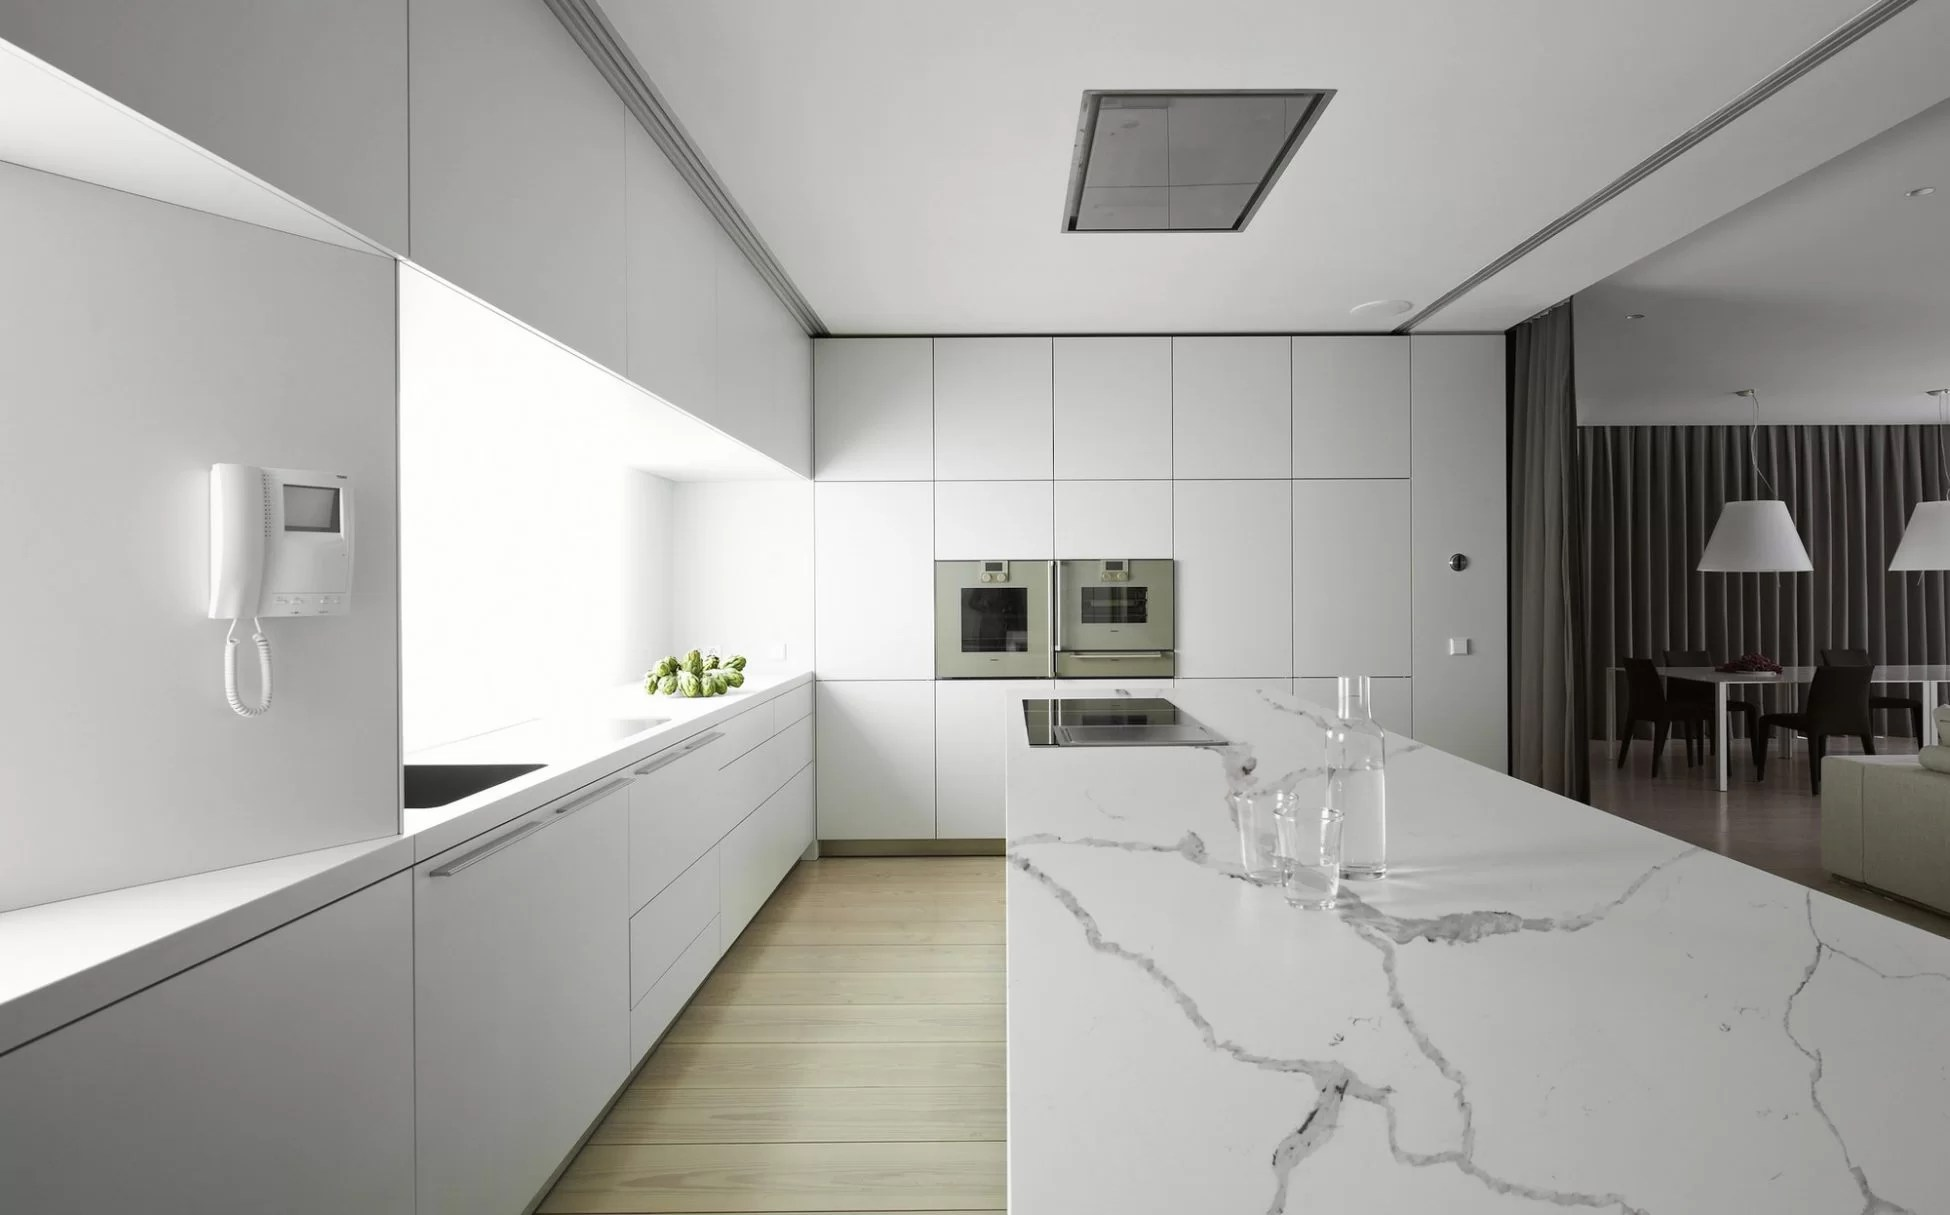 cq981-calacatta-kitchen-island-2